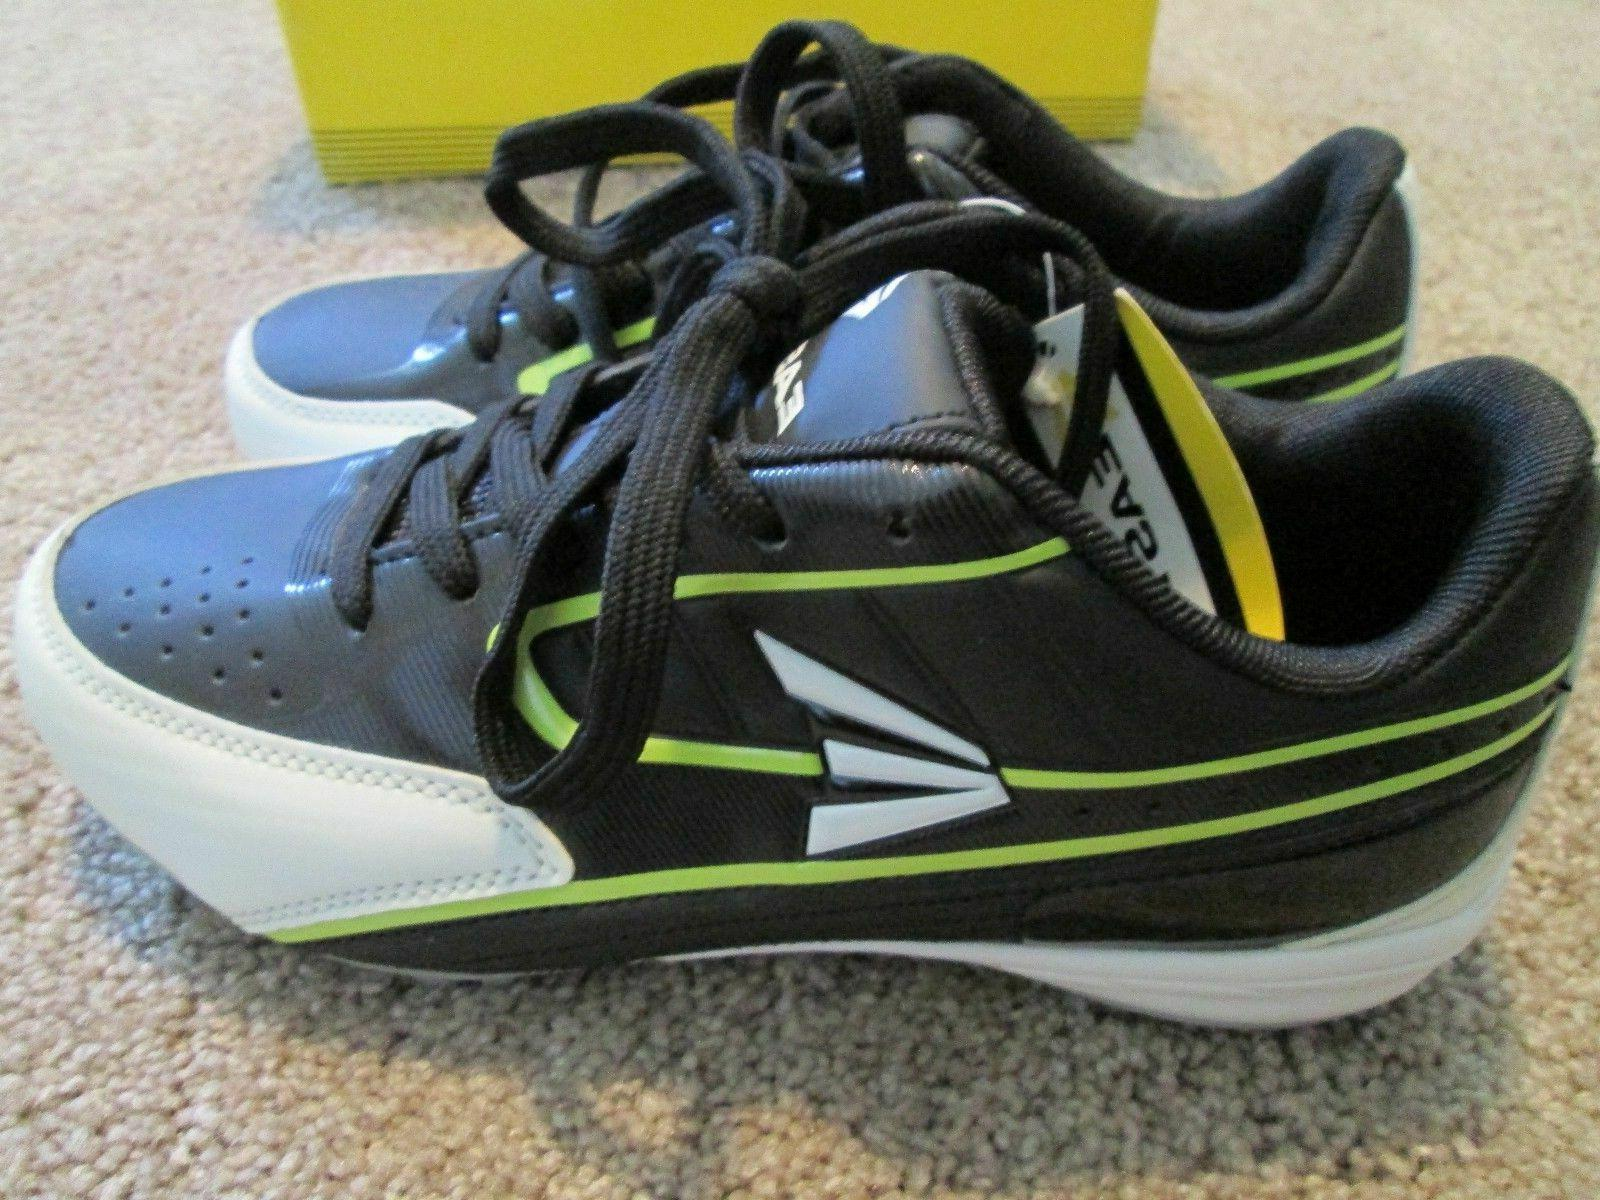 new womens size 9 turbo lite molded